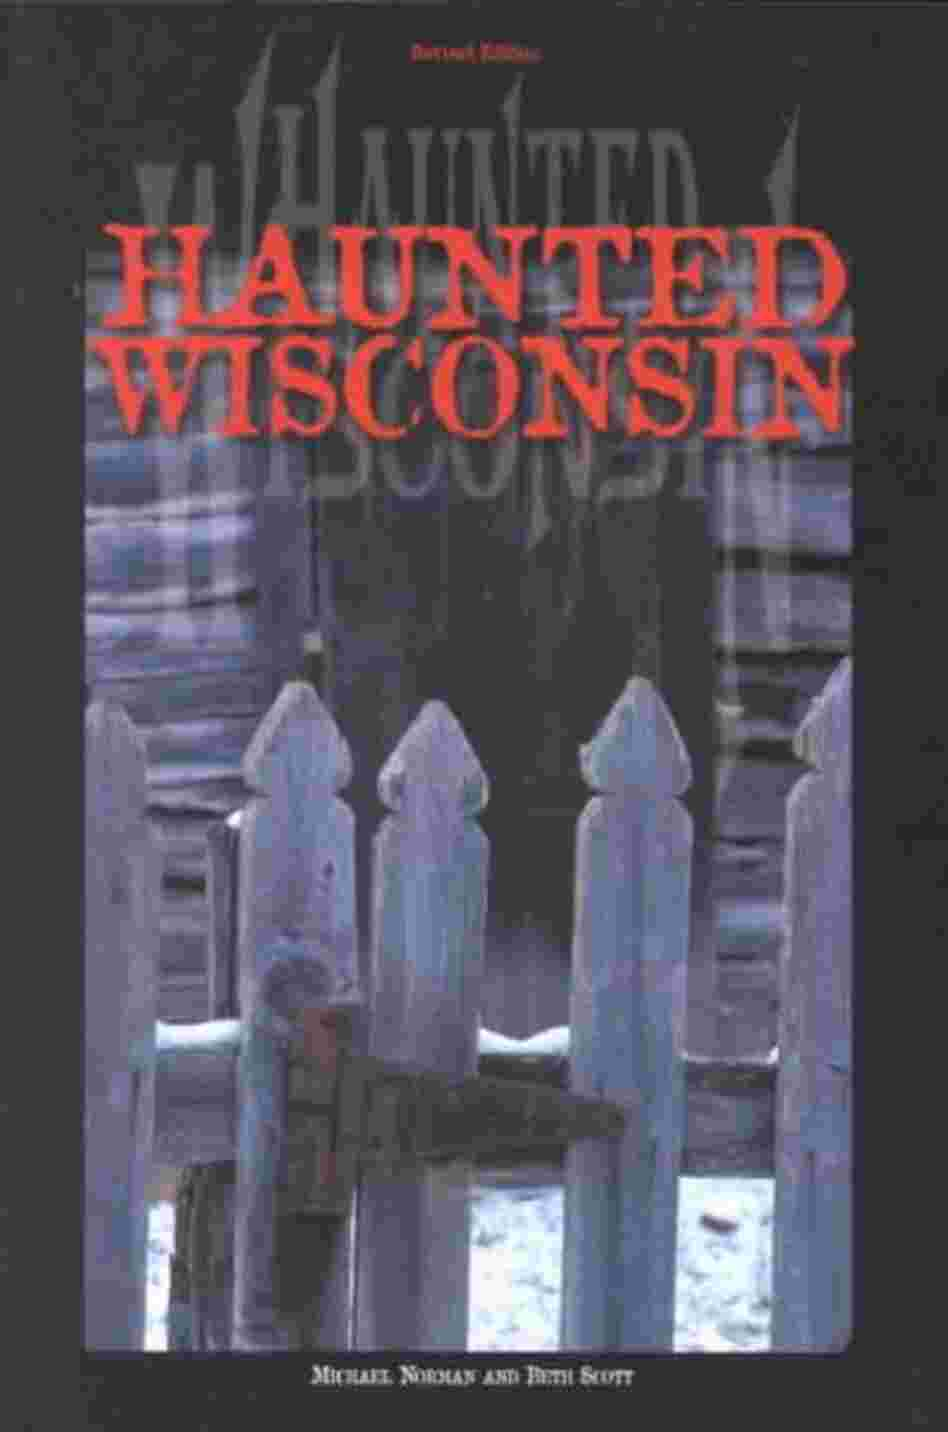 Haunted Wisconsin